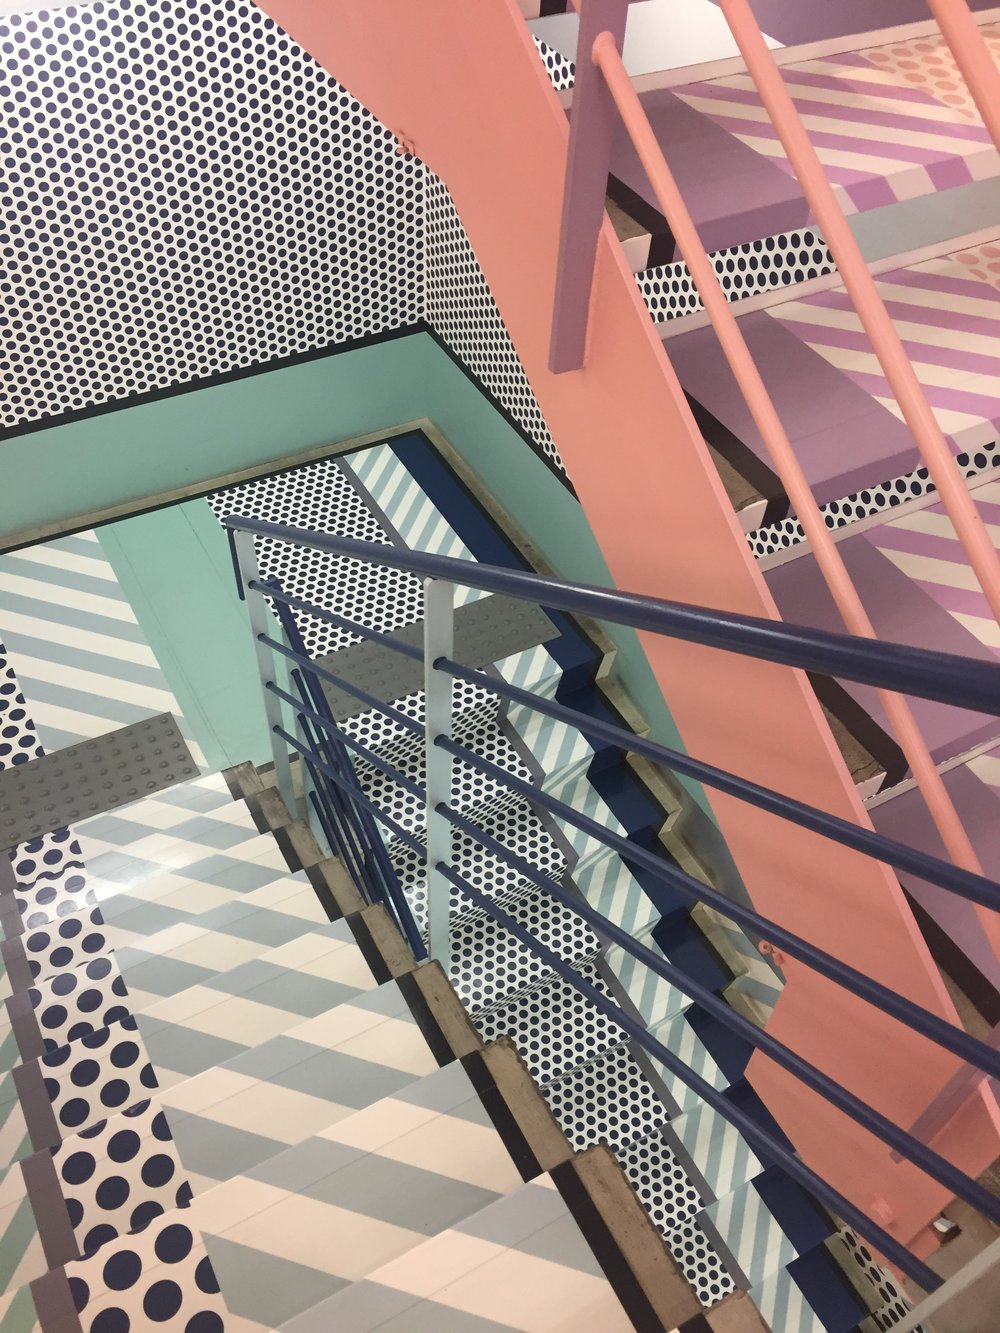 BEAUTIFUL staircase, Opening Ceremony, Harajuku